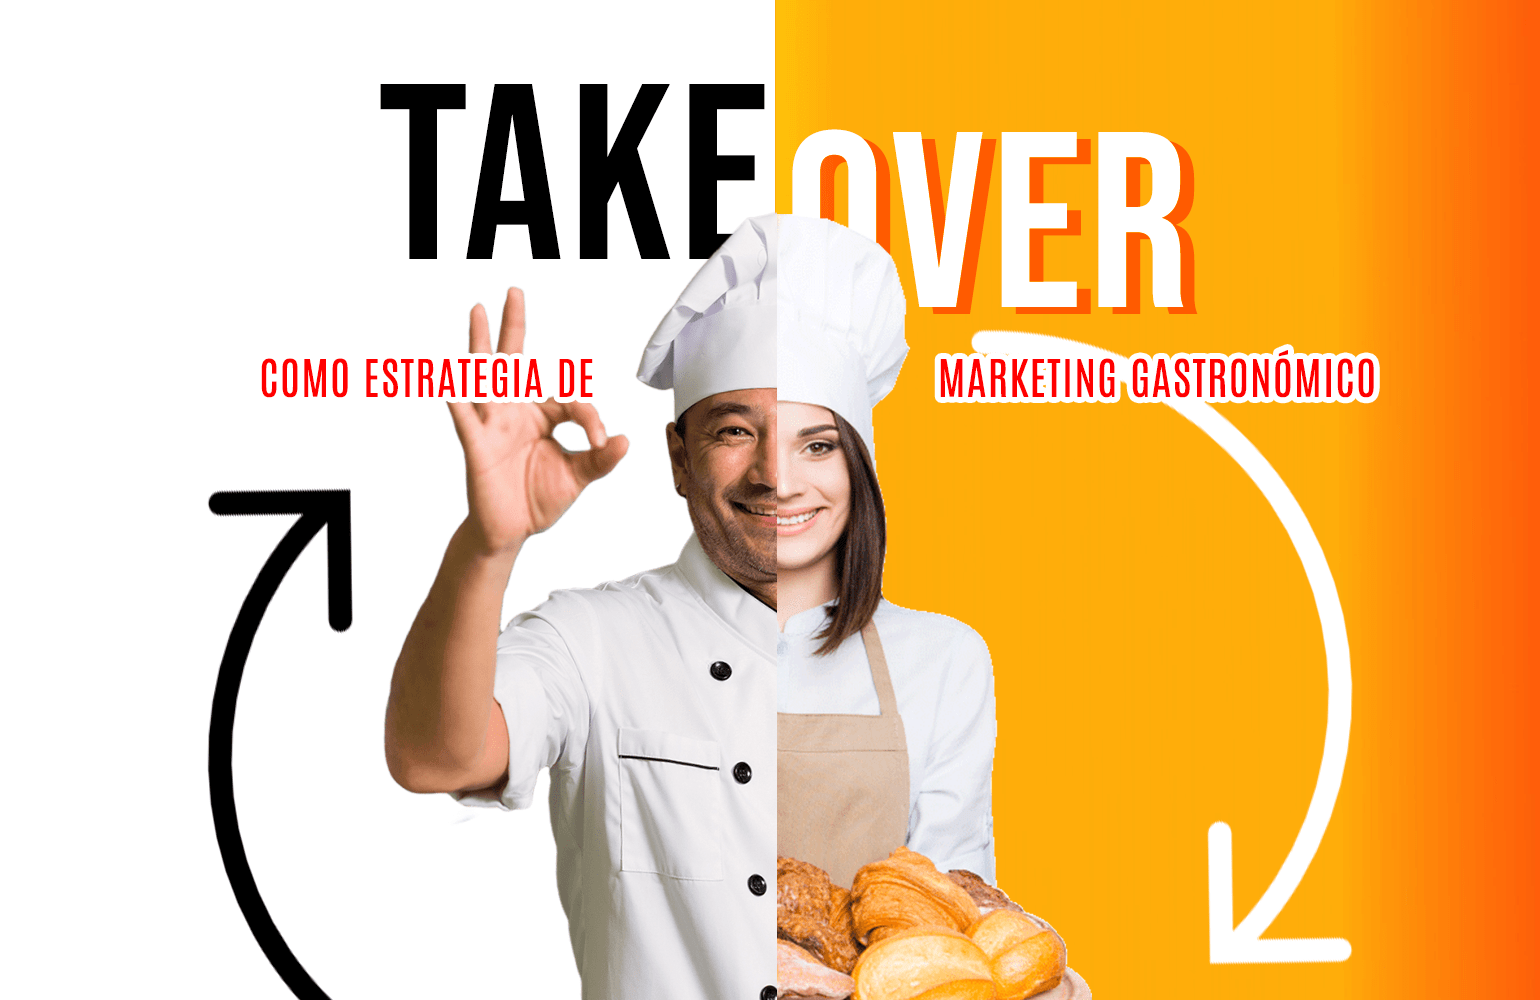 Takeover como estrategia de marketing gastronómico